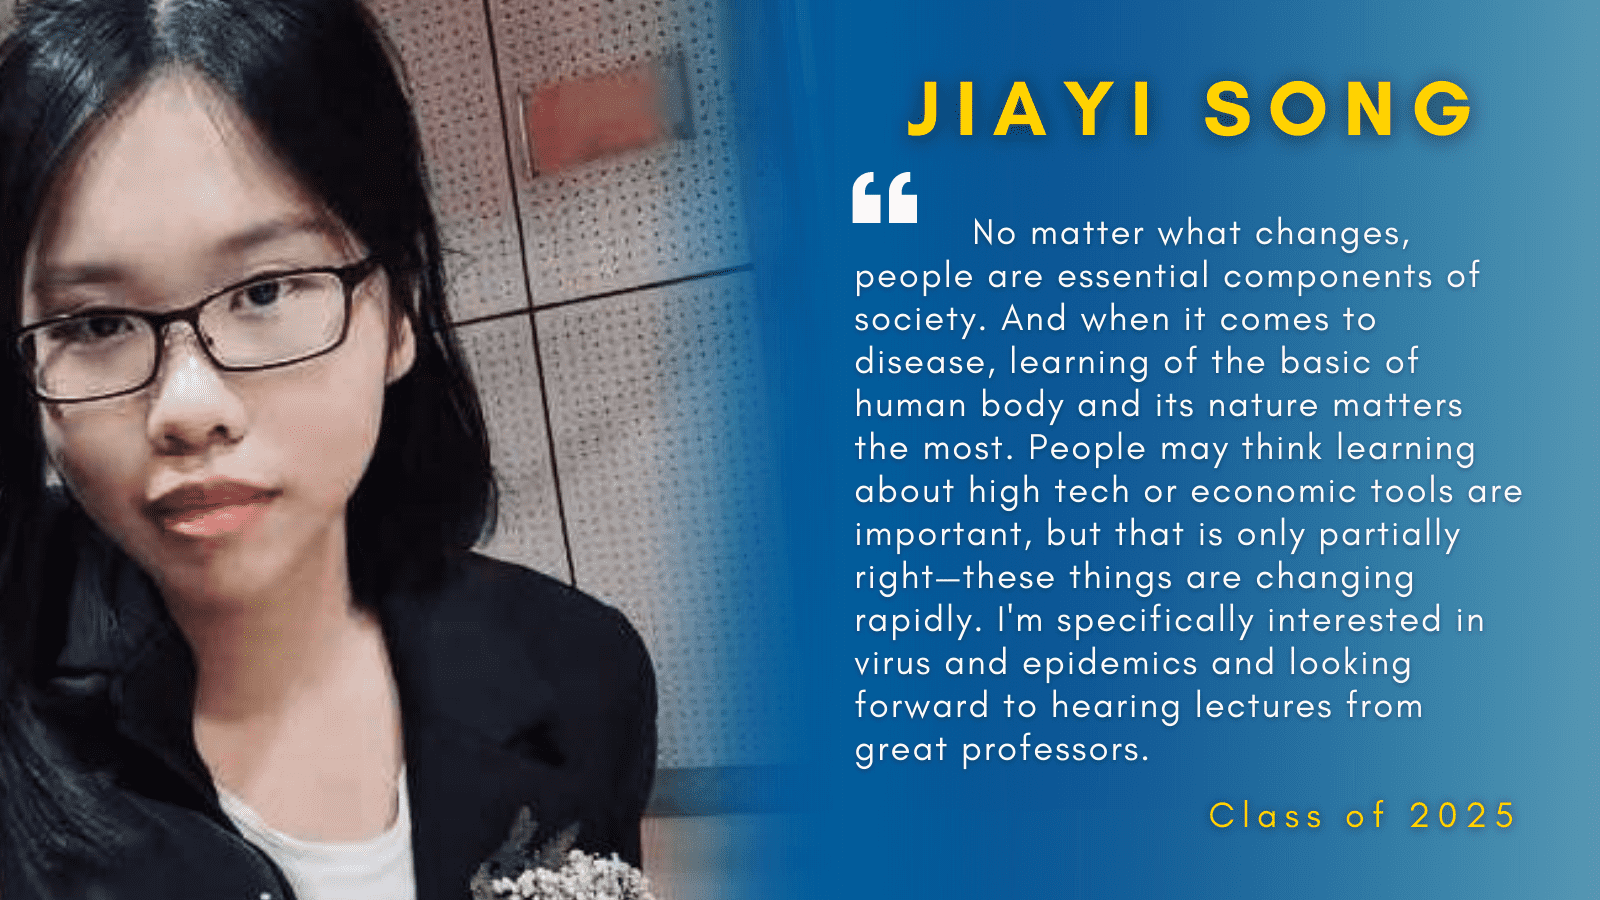 Image of Jiayi Song with her quote.